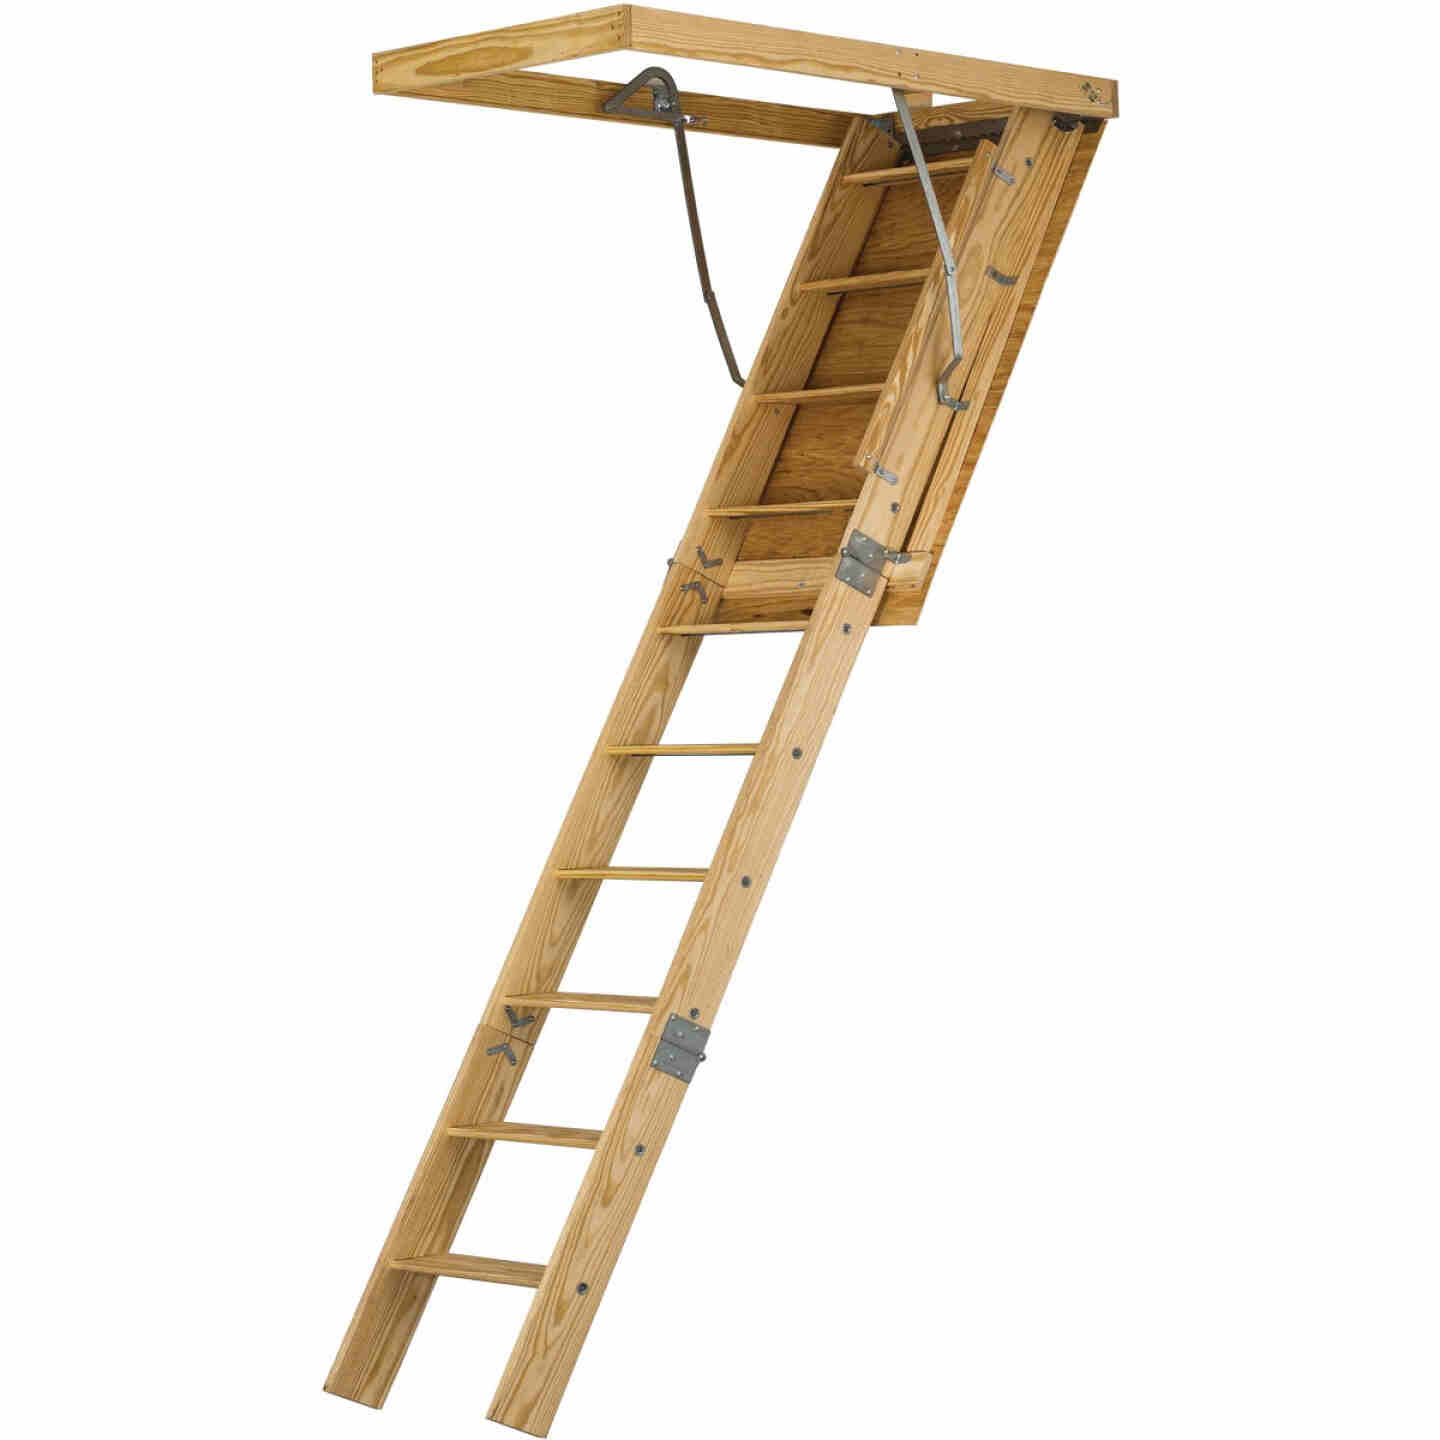 Louisville Spacemaker 8 Ft. 9 In. 30 In. x 54 In. Wood Attic Stairs, 350 Lb. Load Image 1